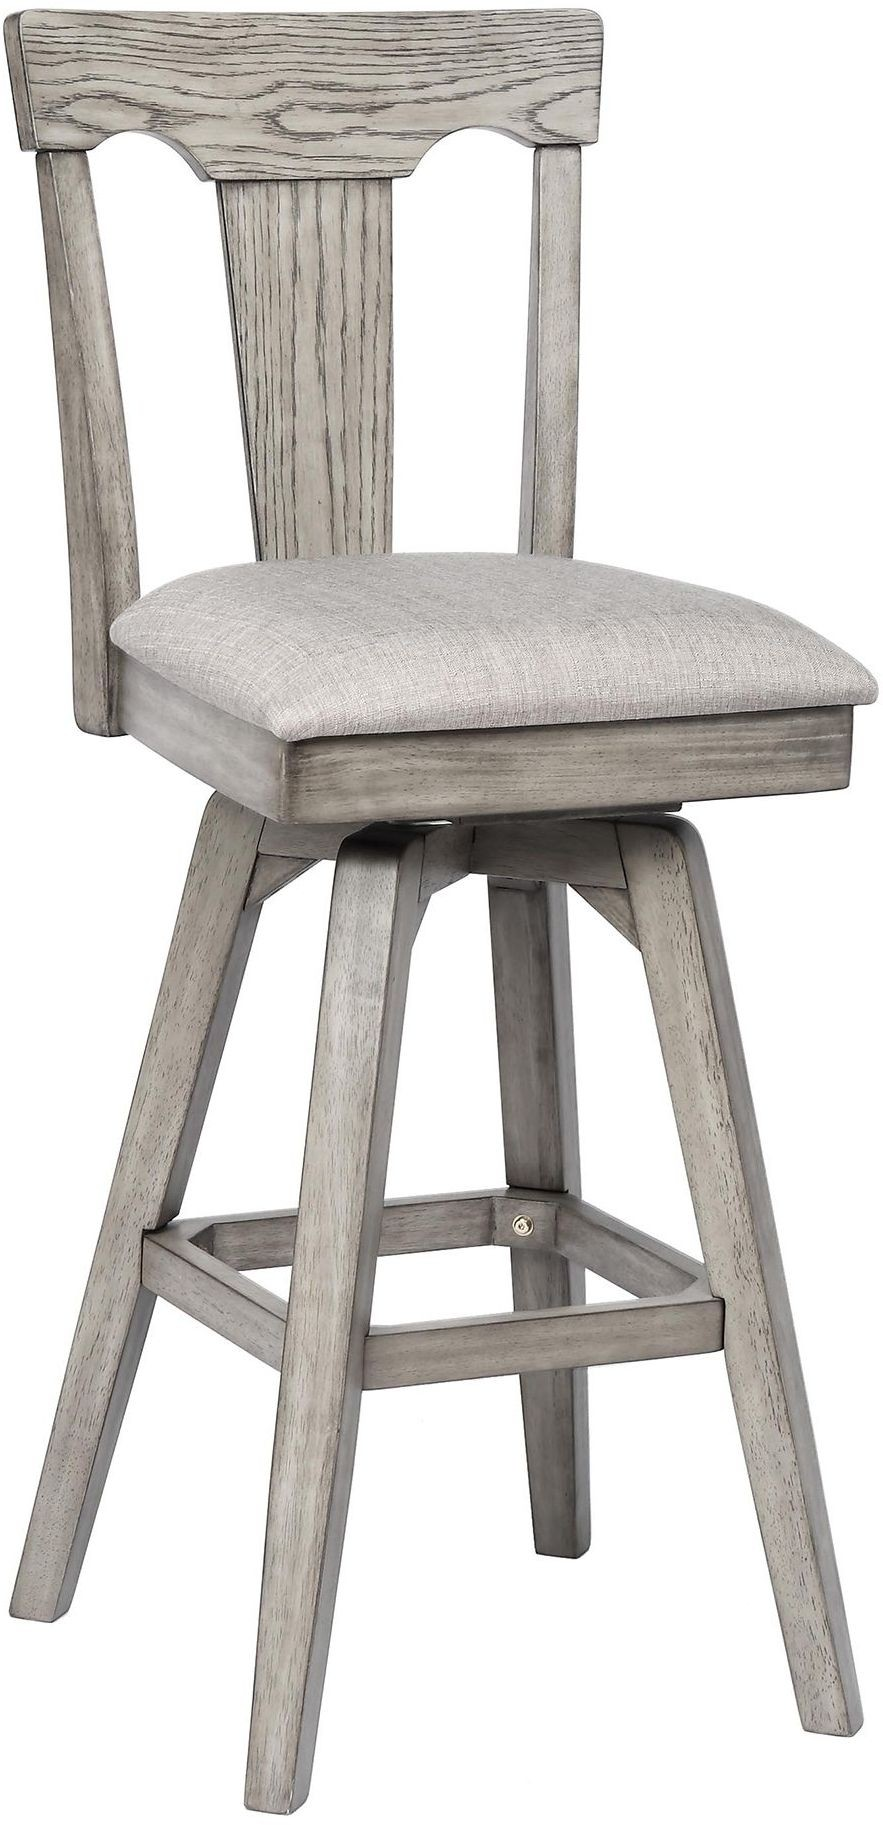 Graystone Burnished Gray 30 Barstool Set Of 2 From Eci Furniture